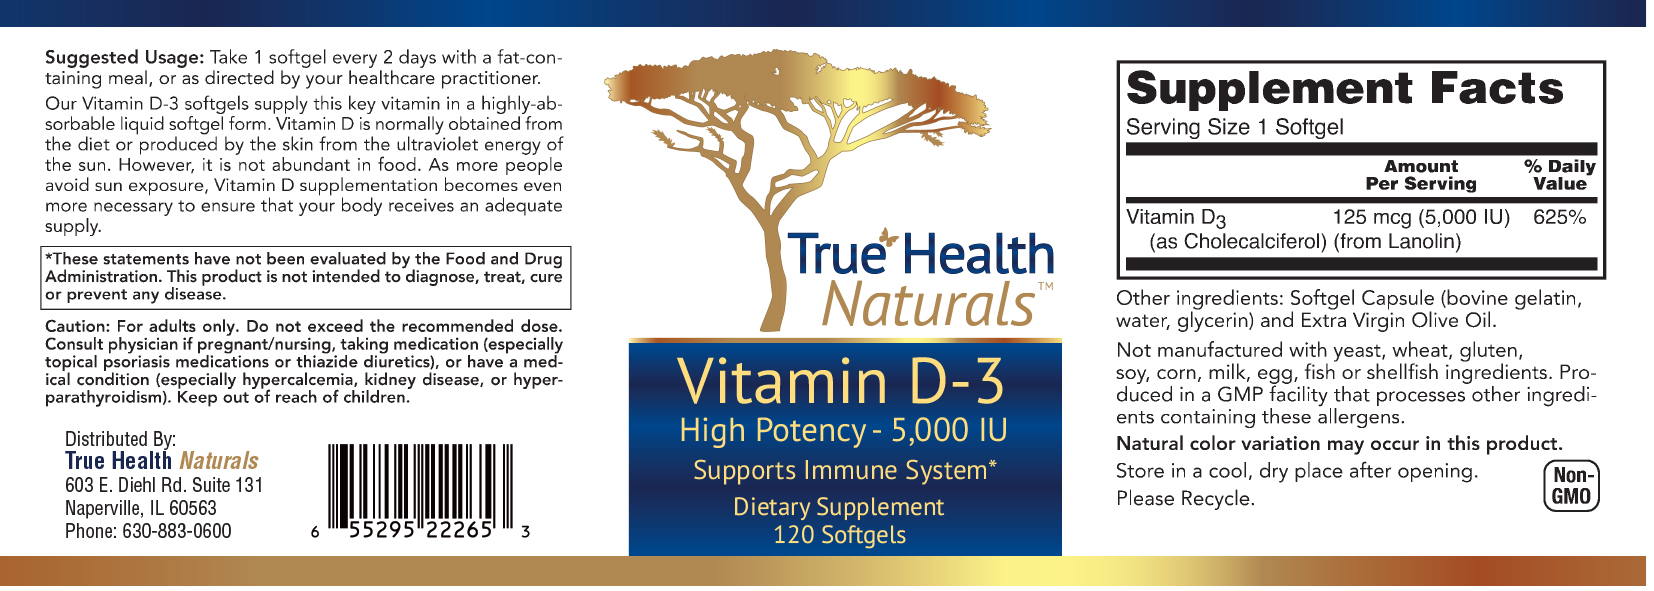 Vitamin D3 capsule label